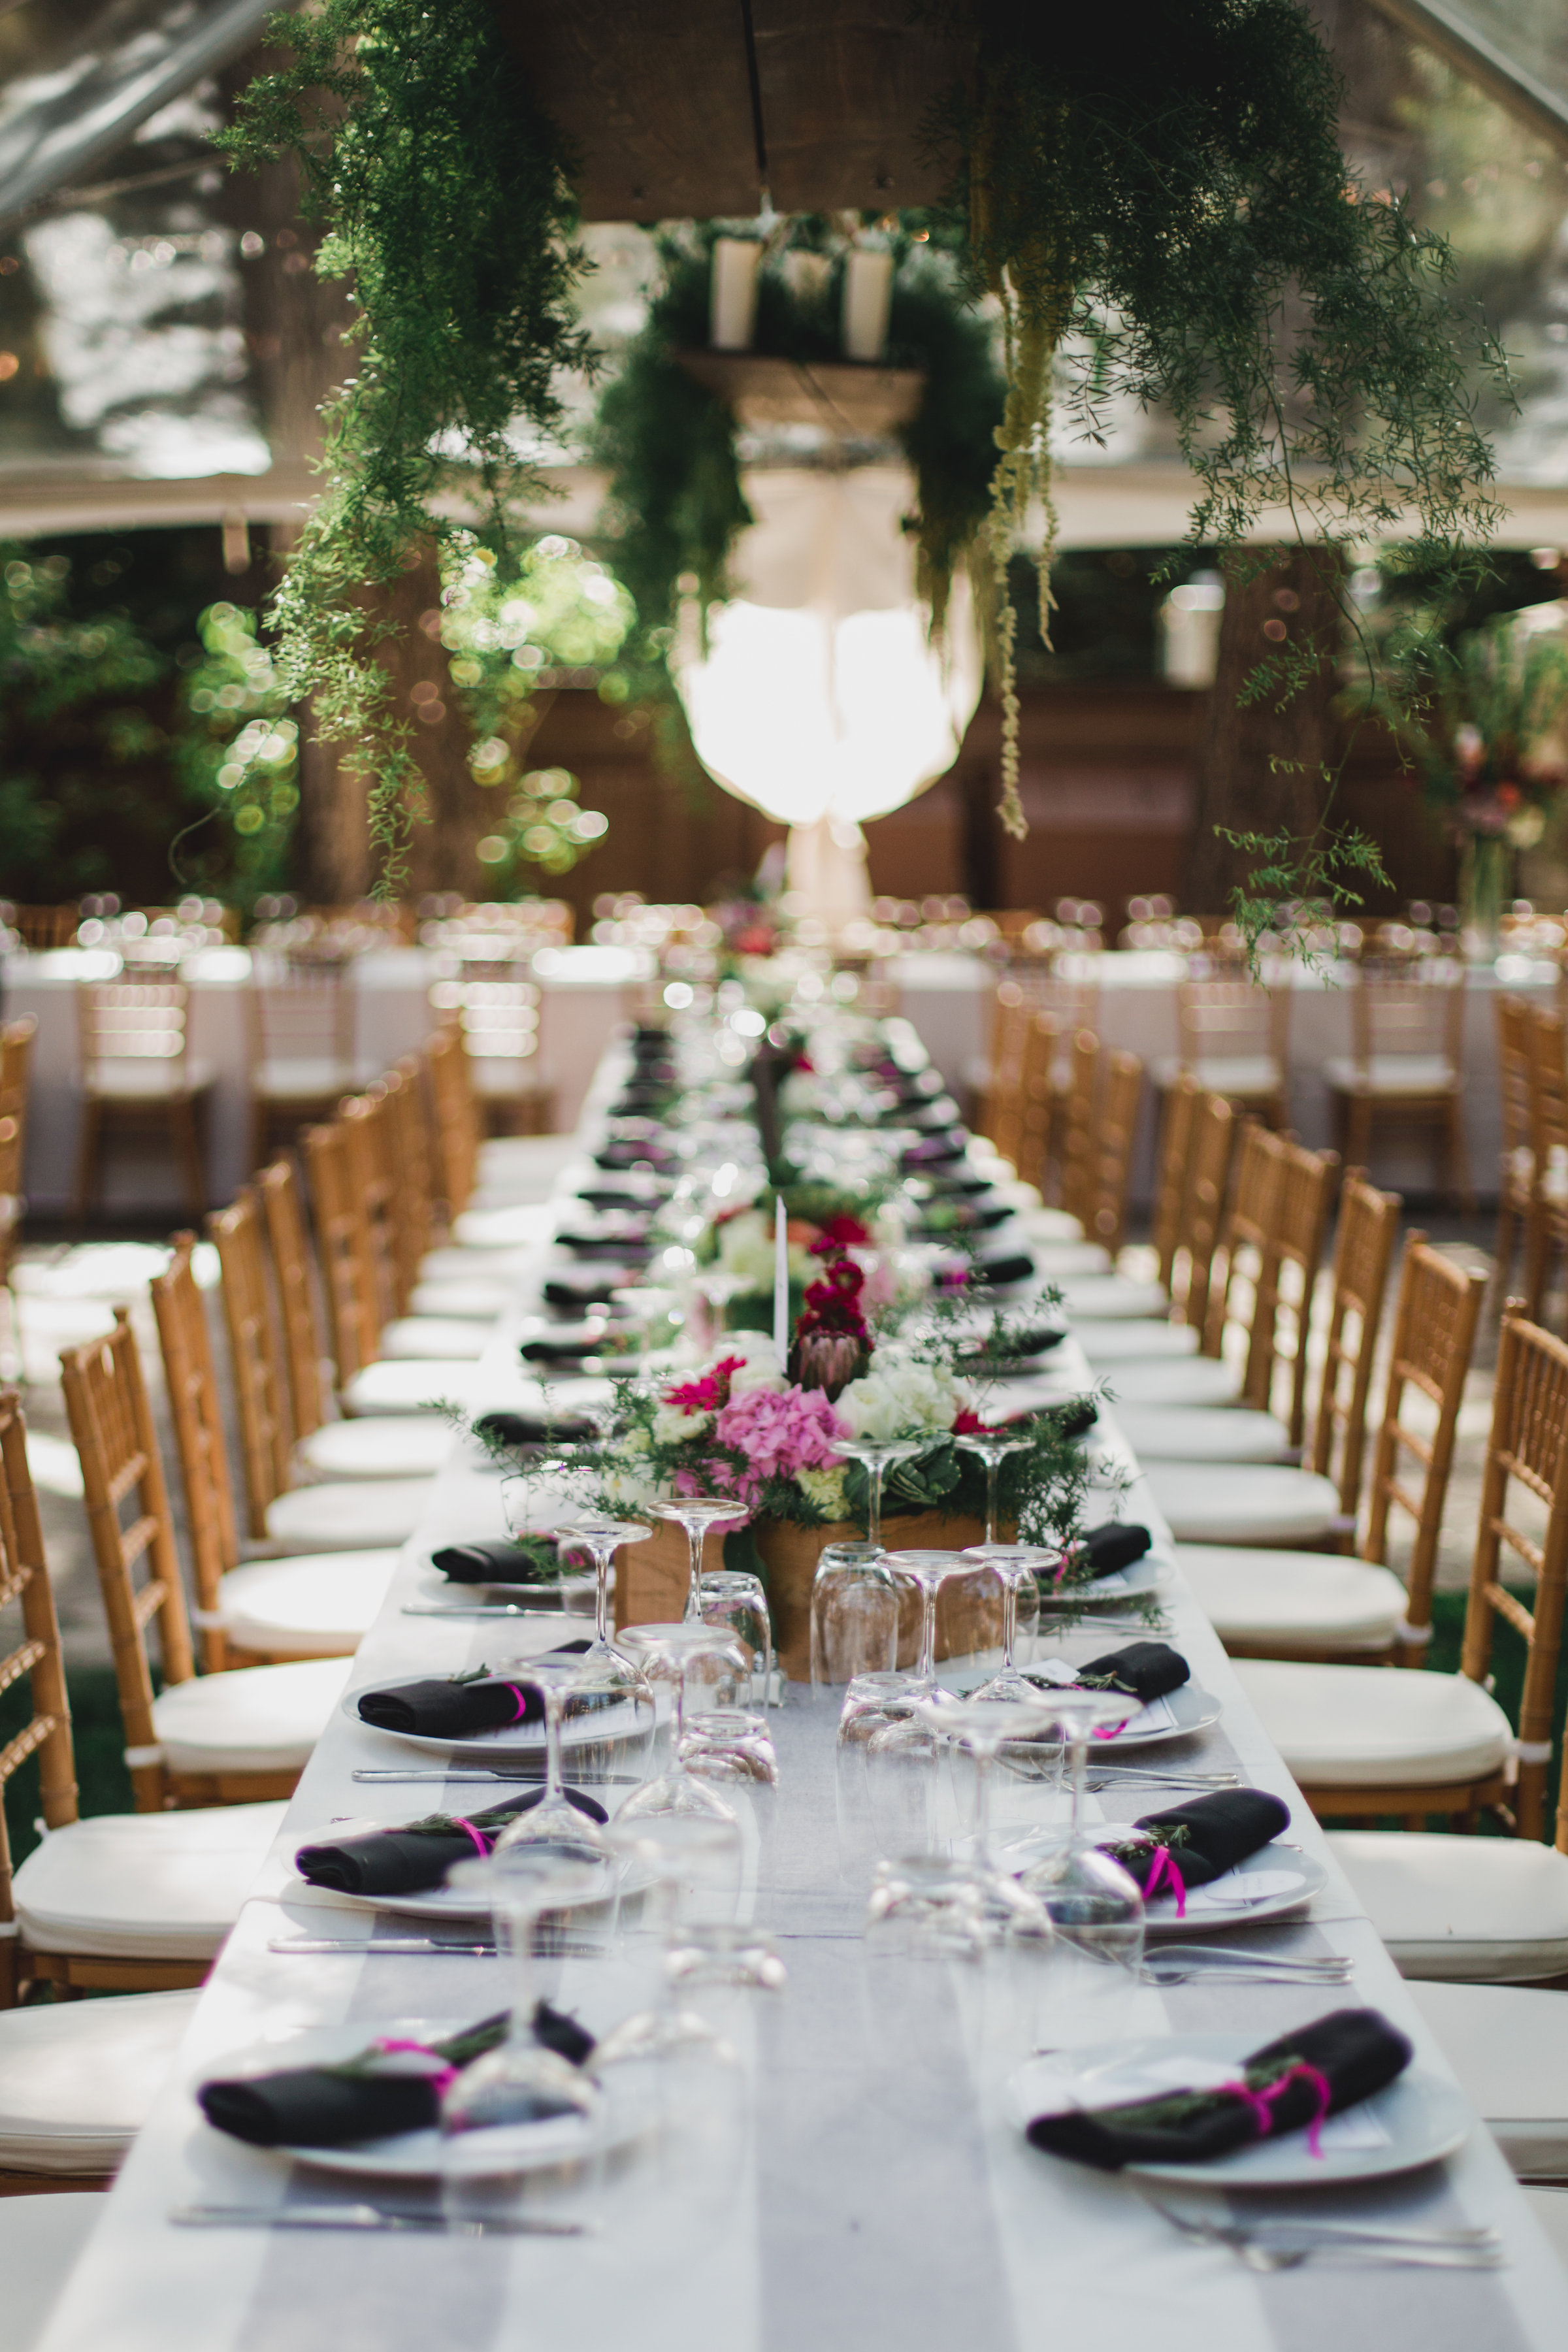 A_Floral_Affair_Gardnerville_Tahoe_Reno_Wedding_Florist_Reception_Centerpiece (9)